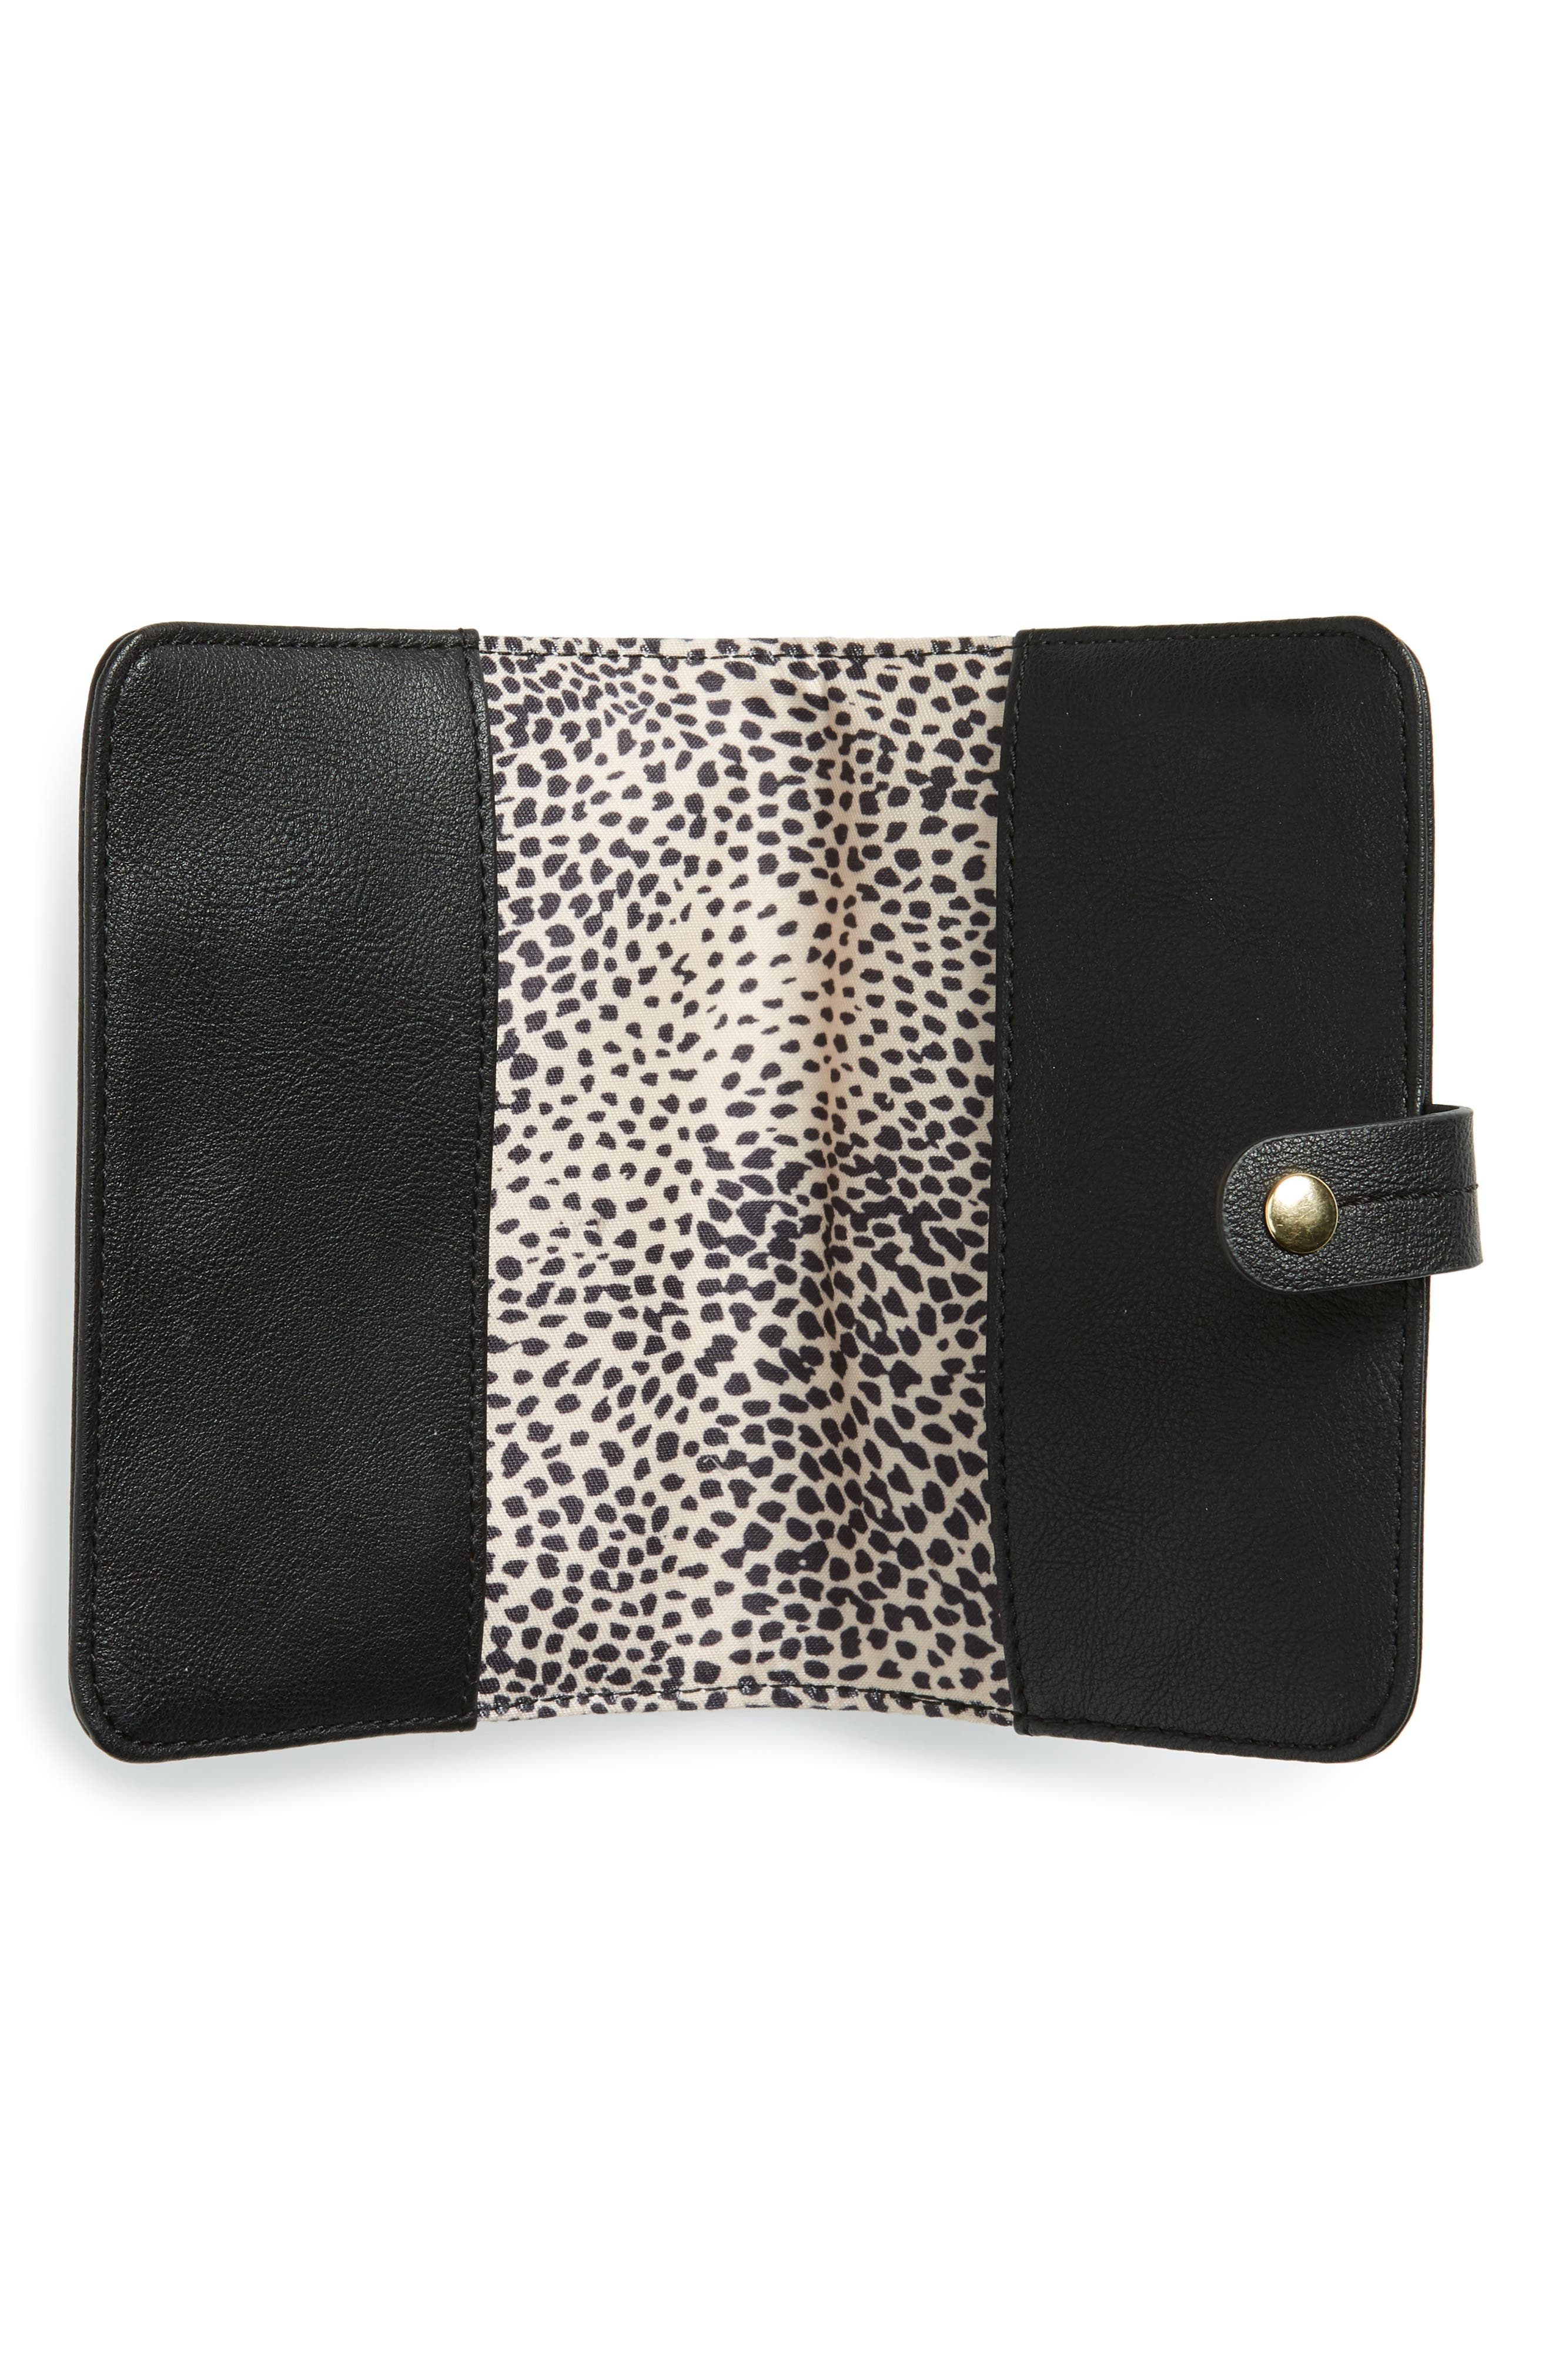 SOLE SOCIETY, Faux Leather Passport Case & Luggage Tag Set, Alternate thumbnail 2, color, BLACK